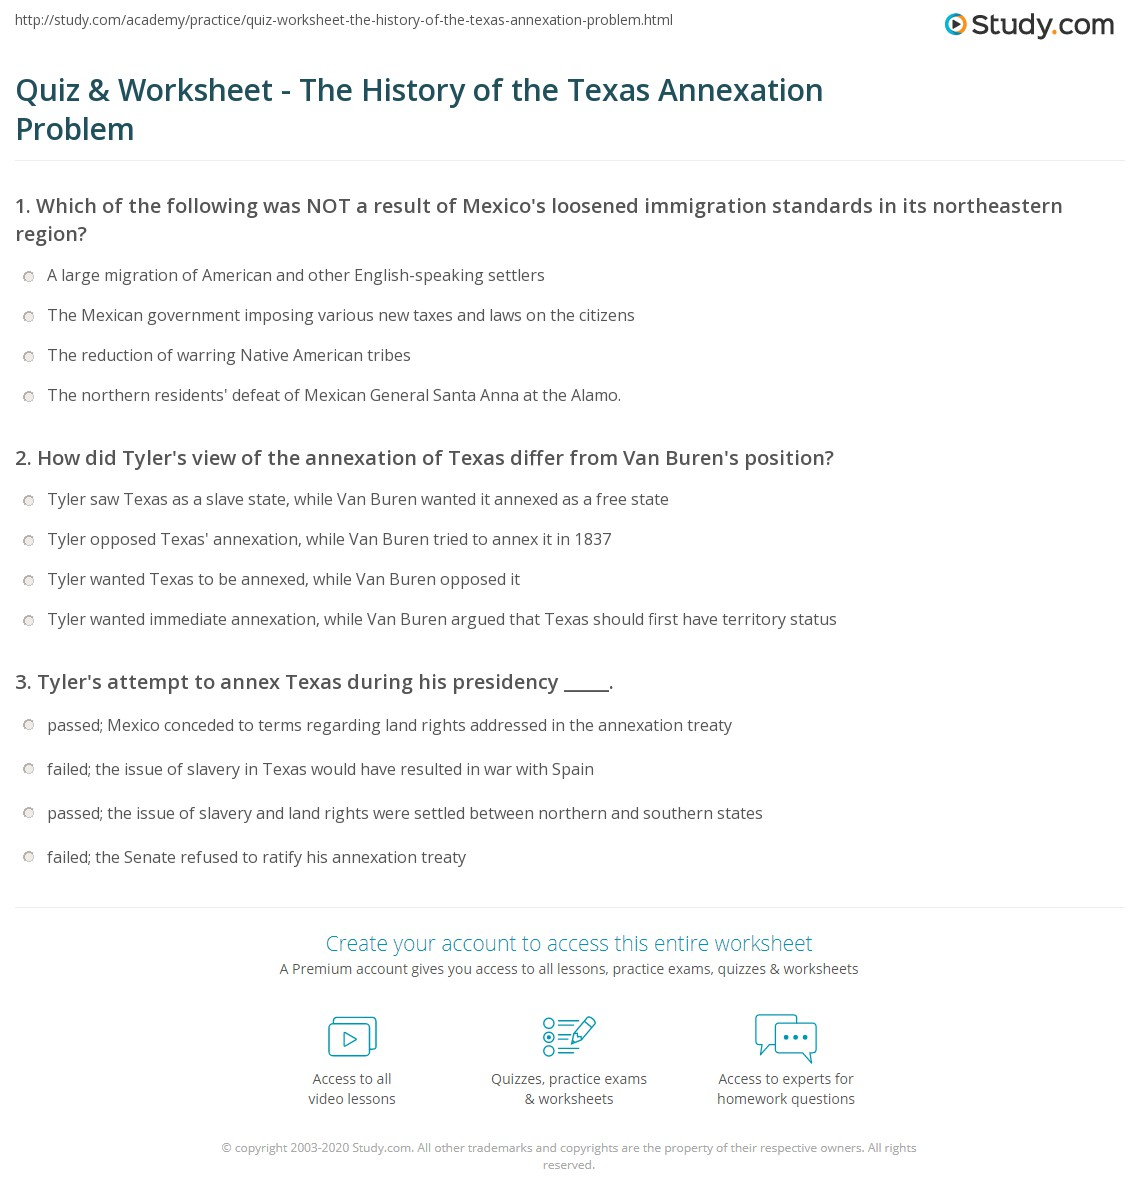 an analysis of the annexation of texas The annexation of texas was a hotly debated issue  texas annexation during westward expansion primary sources and debate  • manifest destiny image analysis .